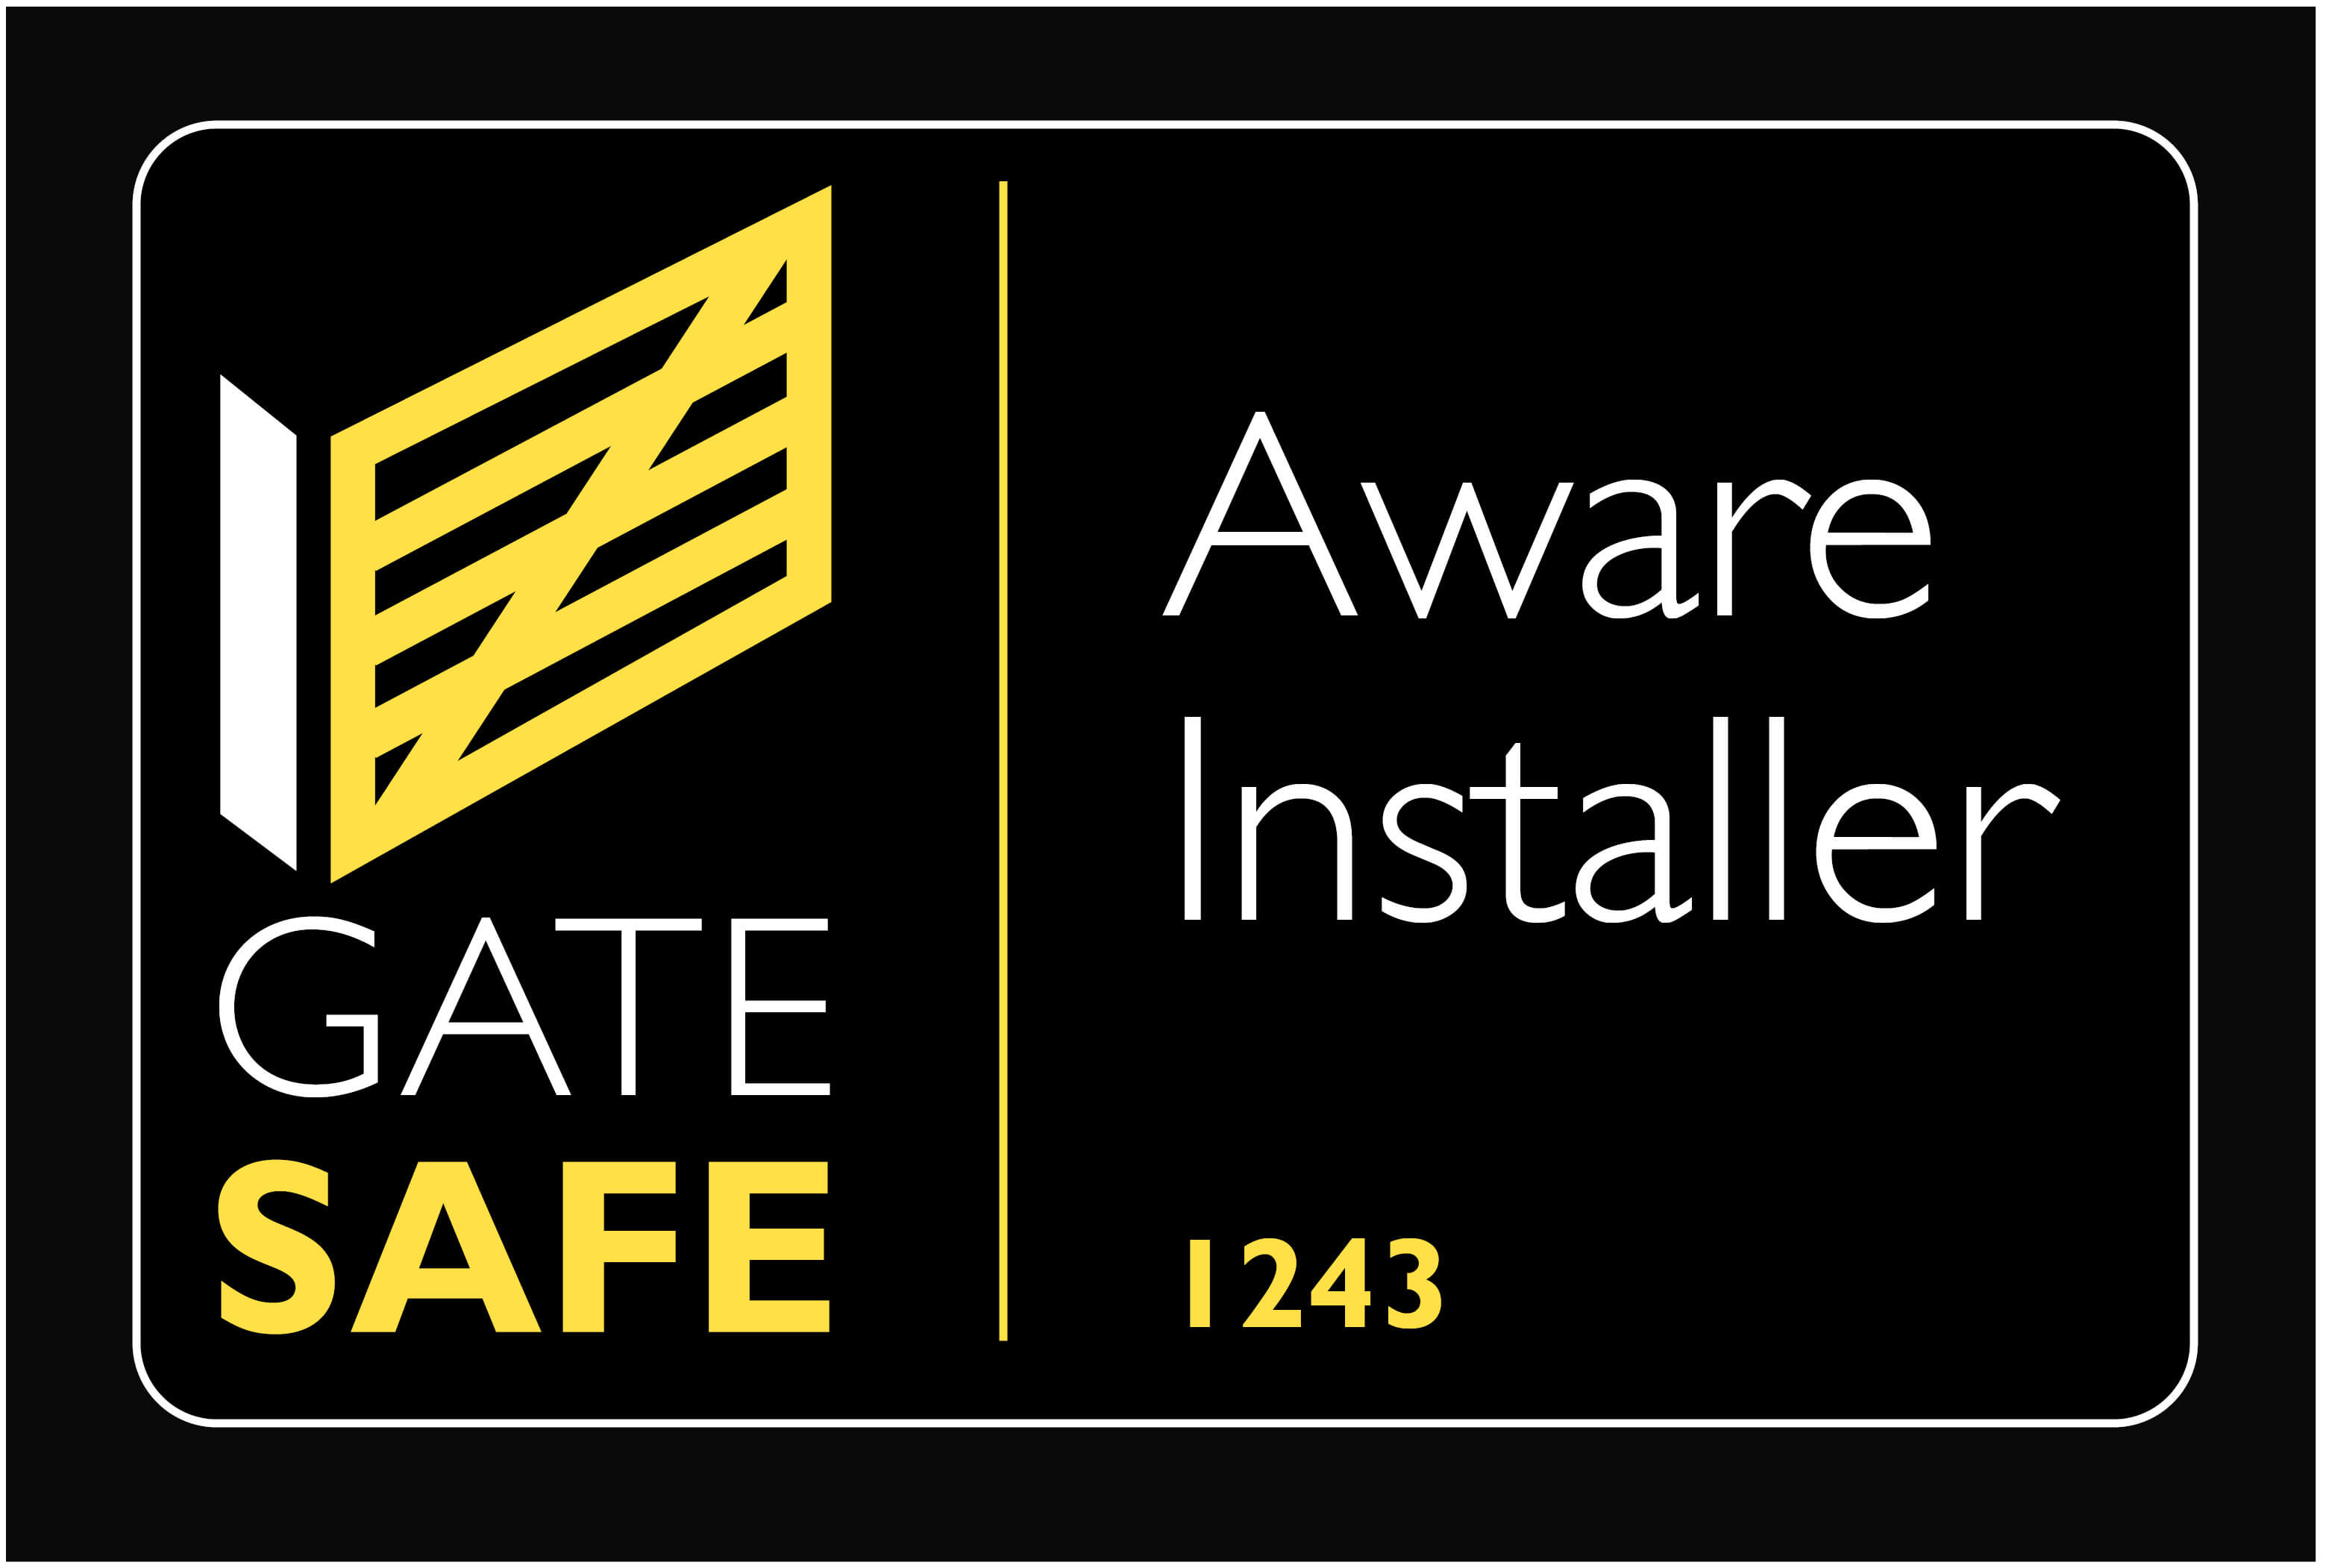 Gate safe logo company 1243 A and C Maintenance